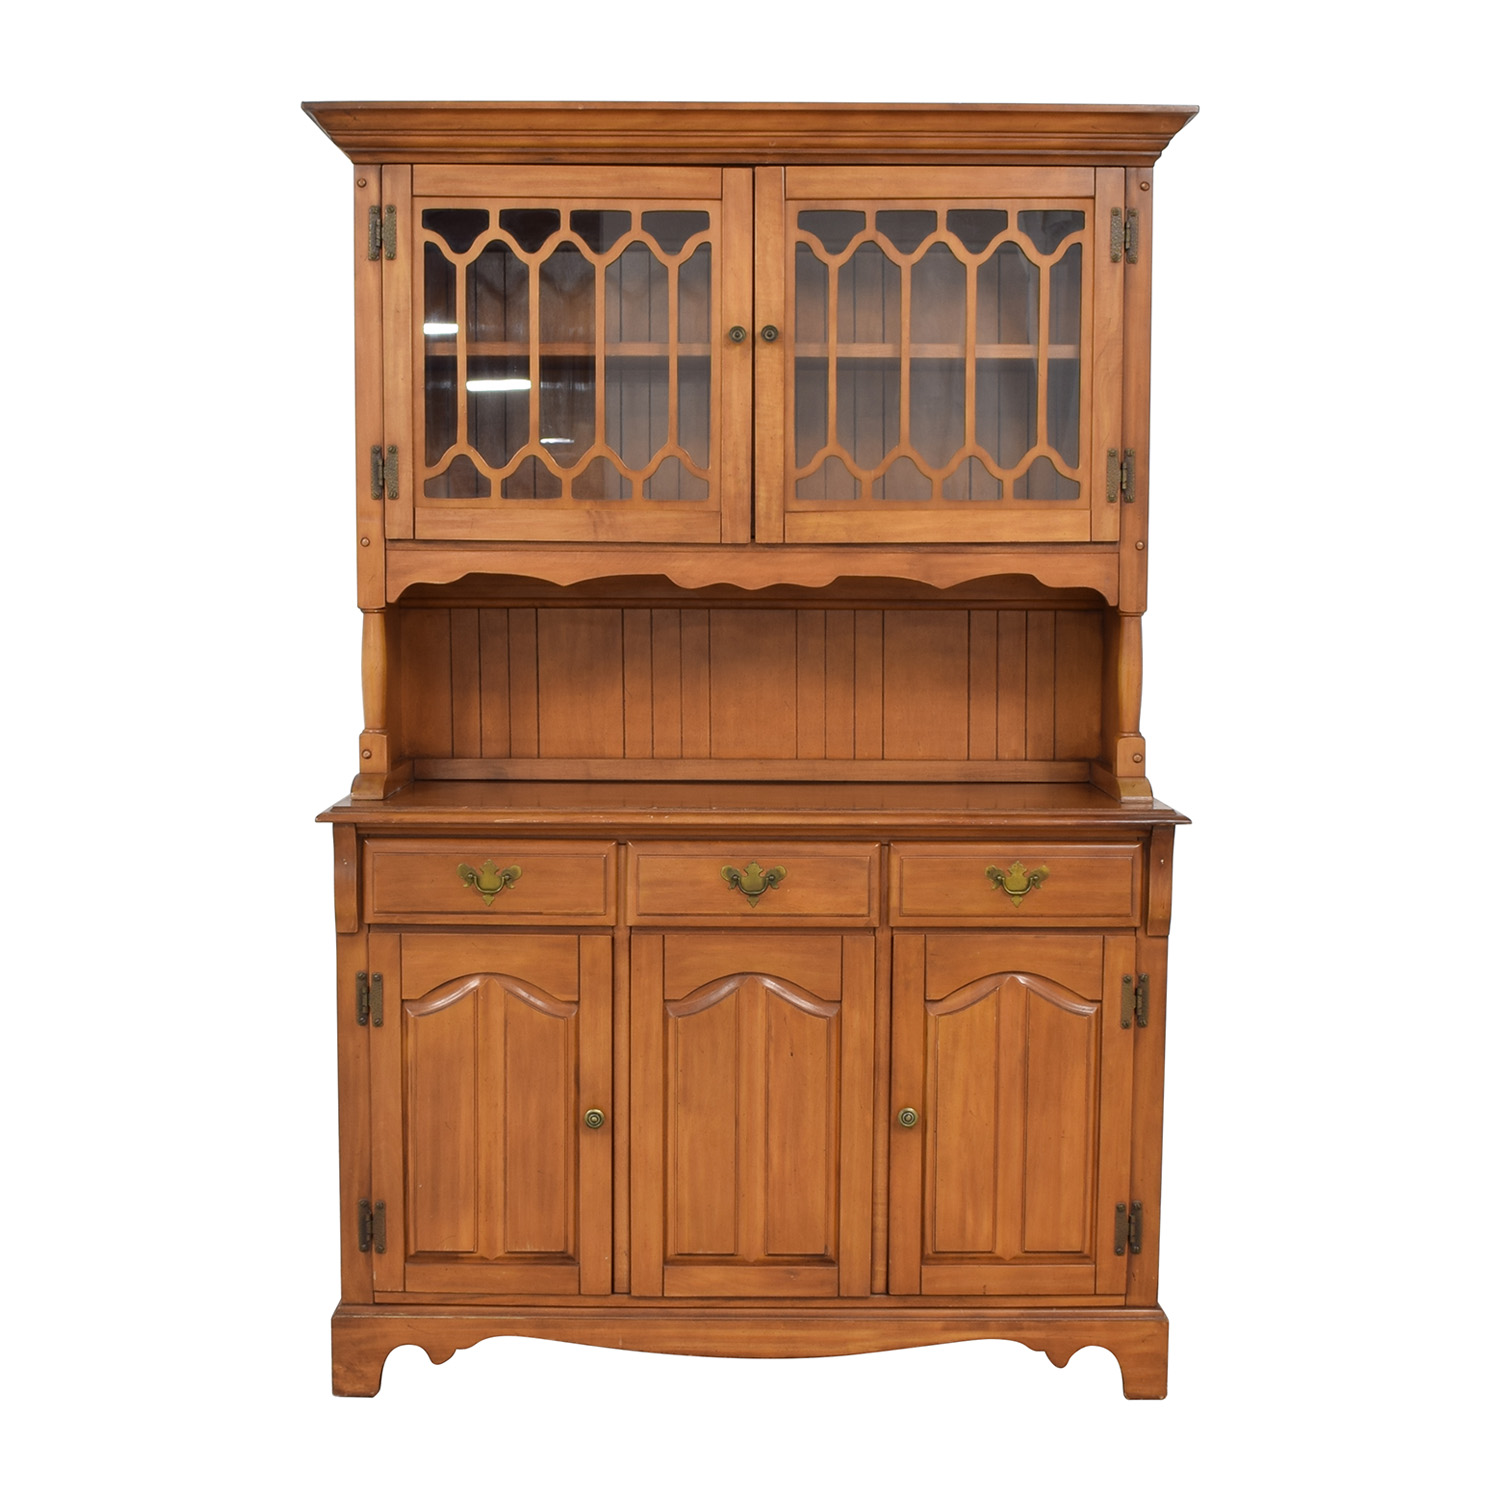 Vintage Country Hutch / Wardrobes & Armoires